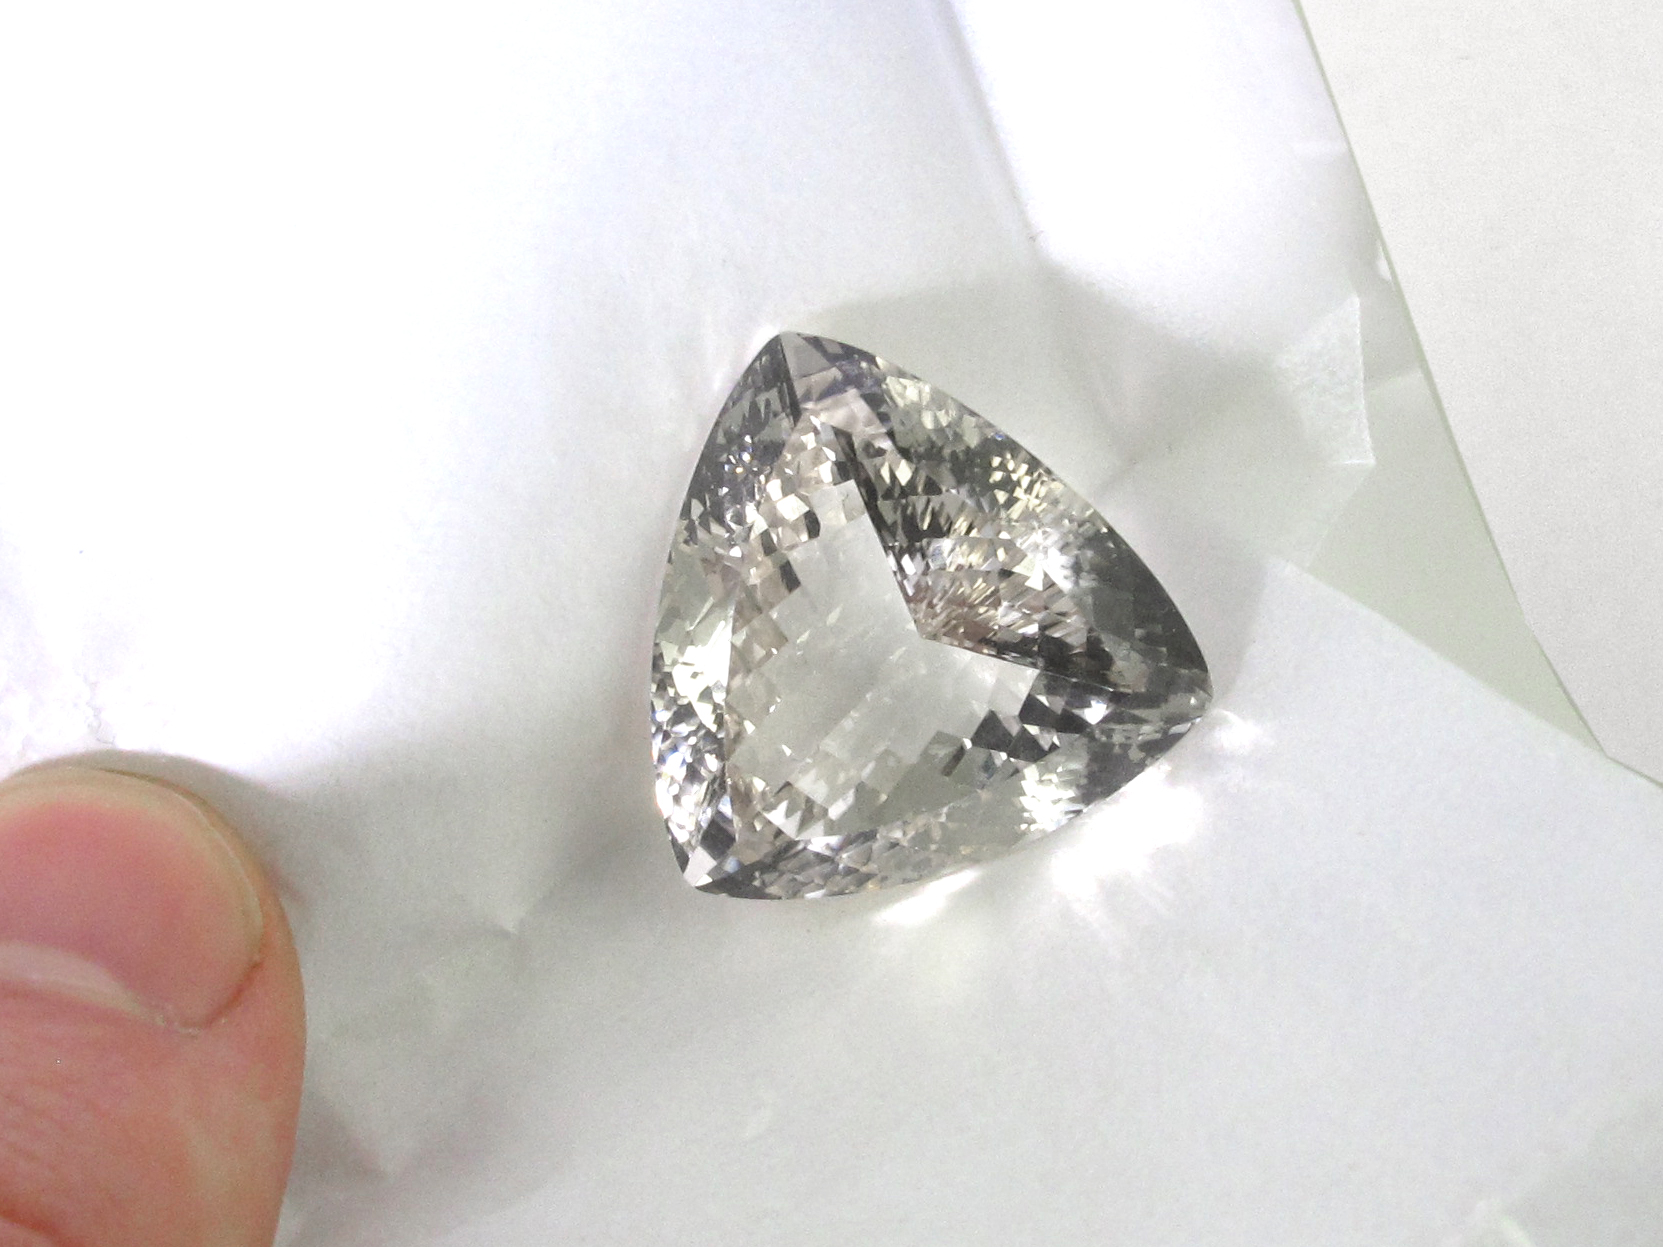 Click here to learn about our diamond & gemstone cutting & polishing services.